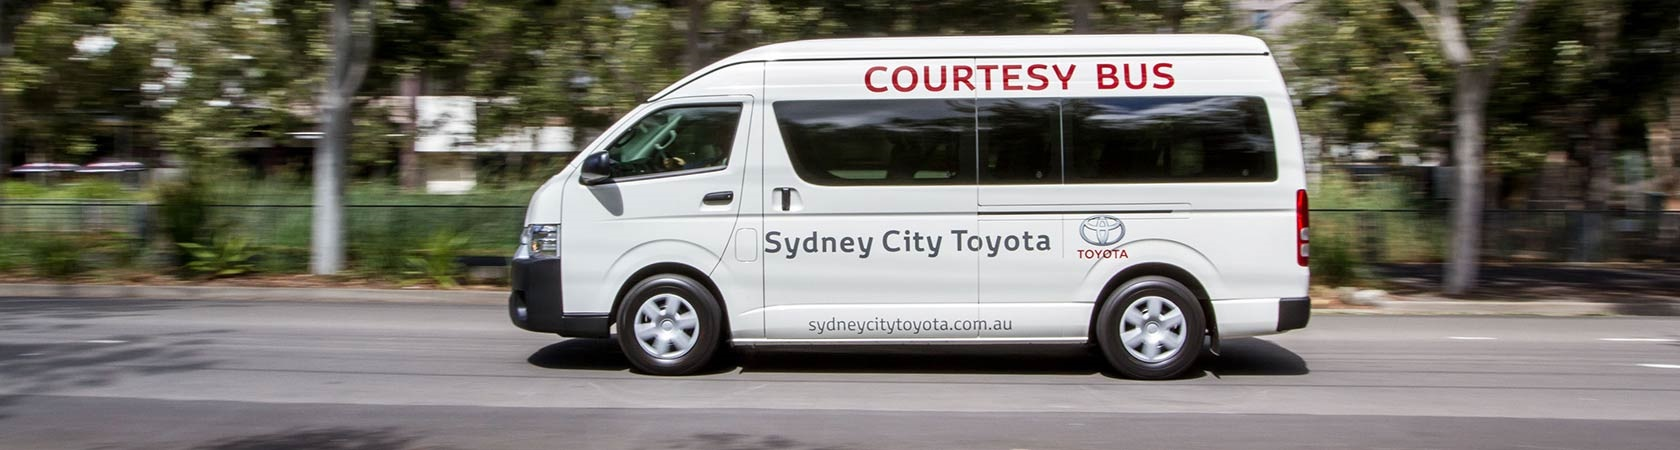 Sydney City Toyota Courtesy Bus